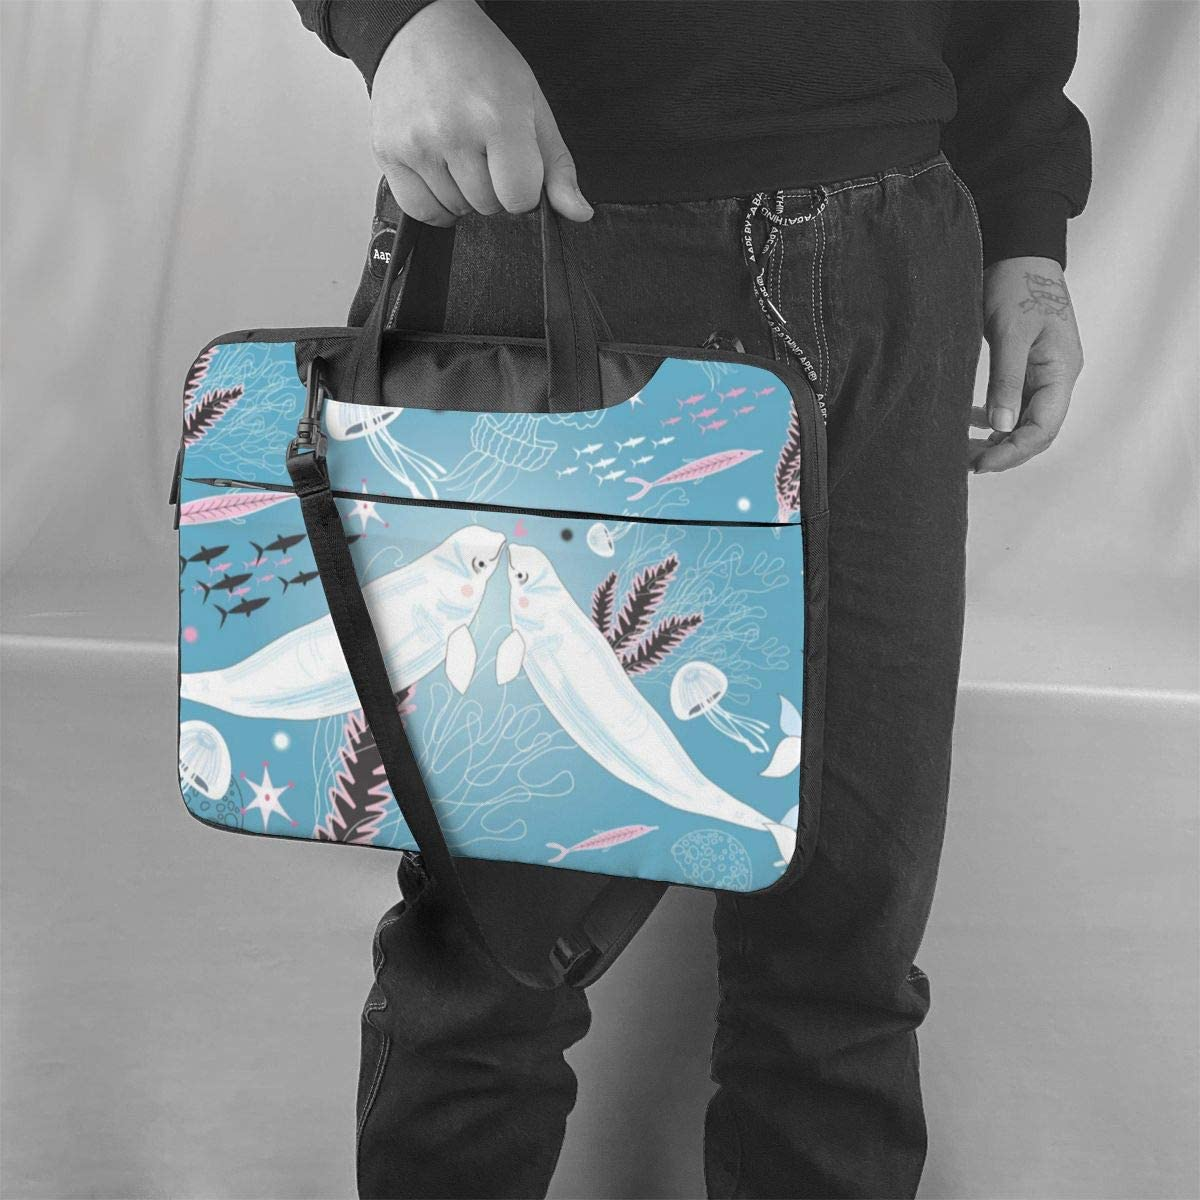 NEPower Laptop Tote Bag Watercolor Whale Protective Laptop Carrying Sleeve with Strap Fits 13-15.6in Laptop for Office